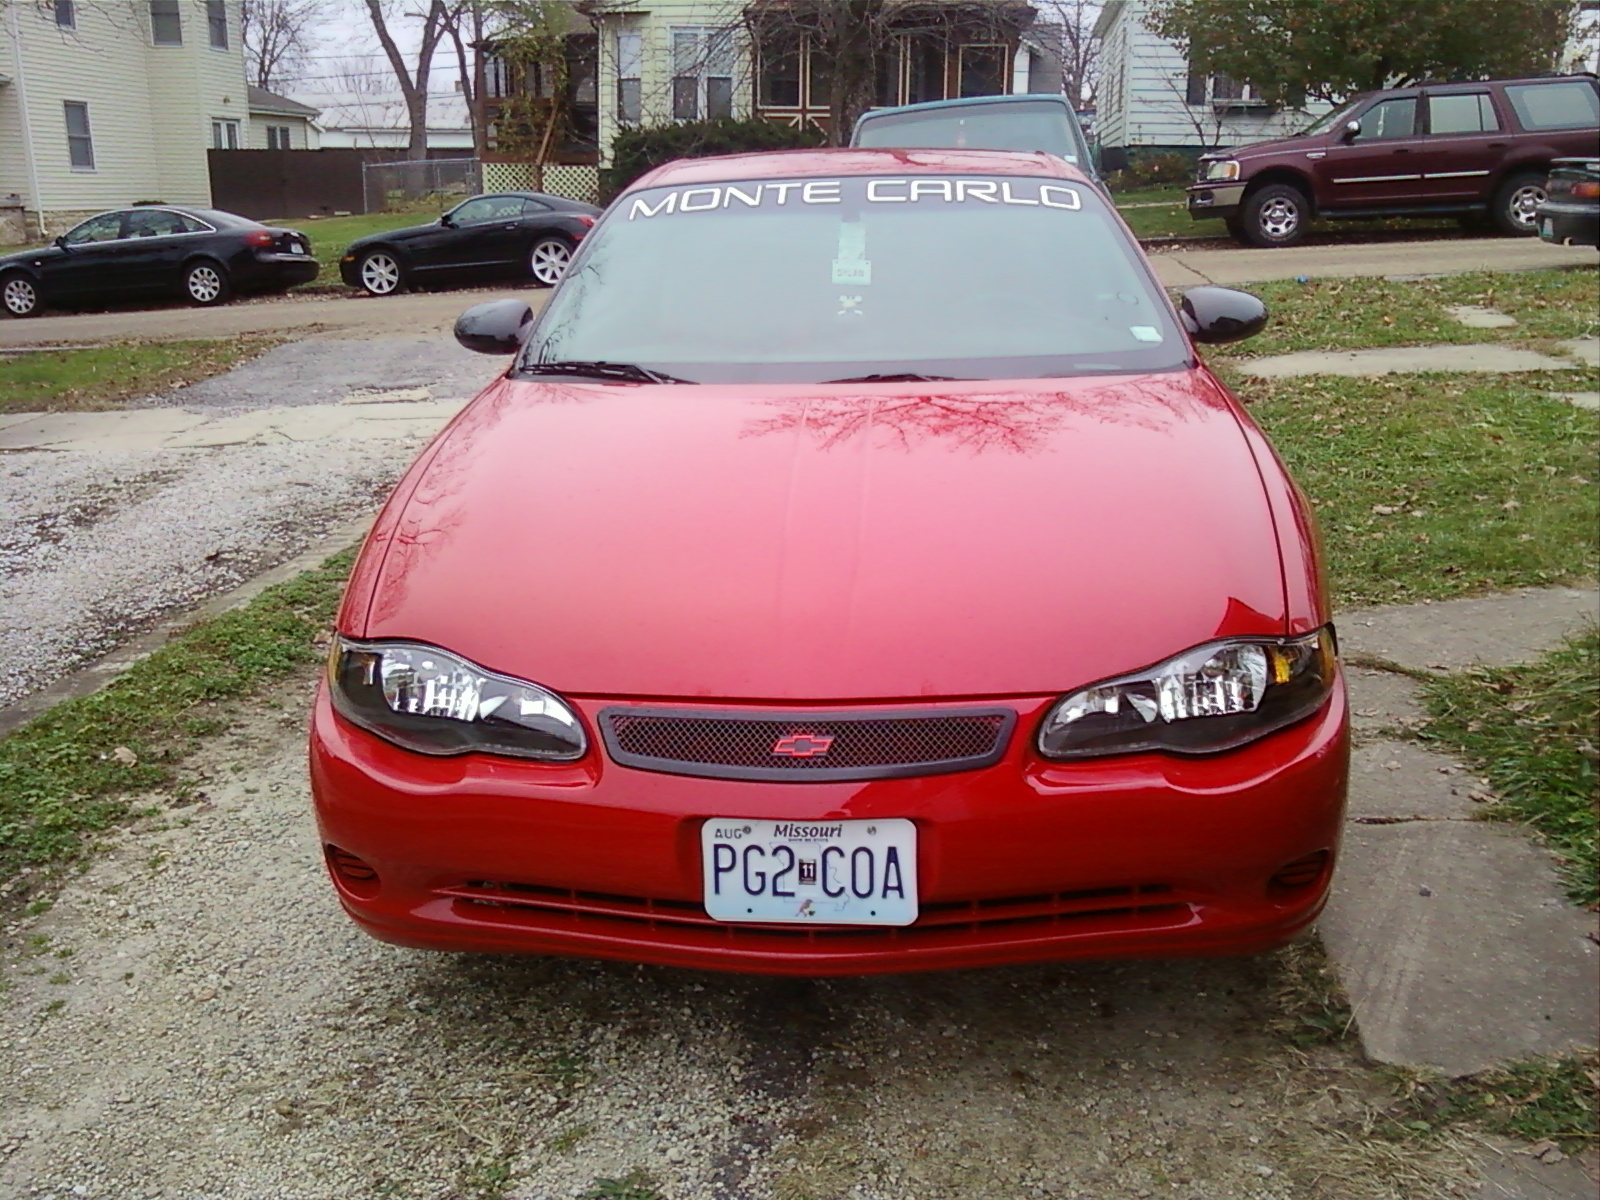 term1991 2003 Chevrolet Monte Carlo 13839457